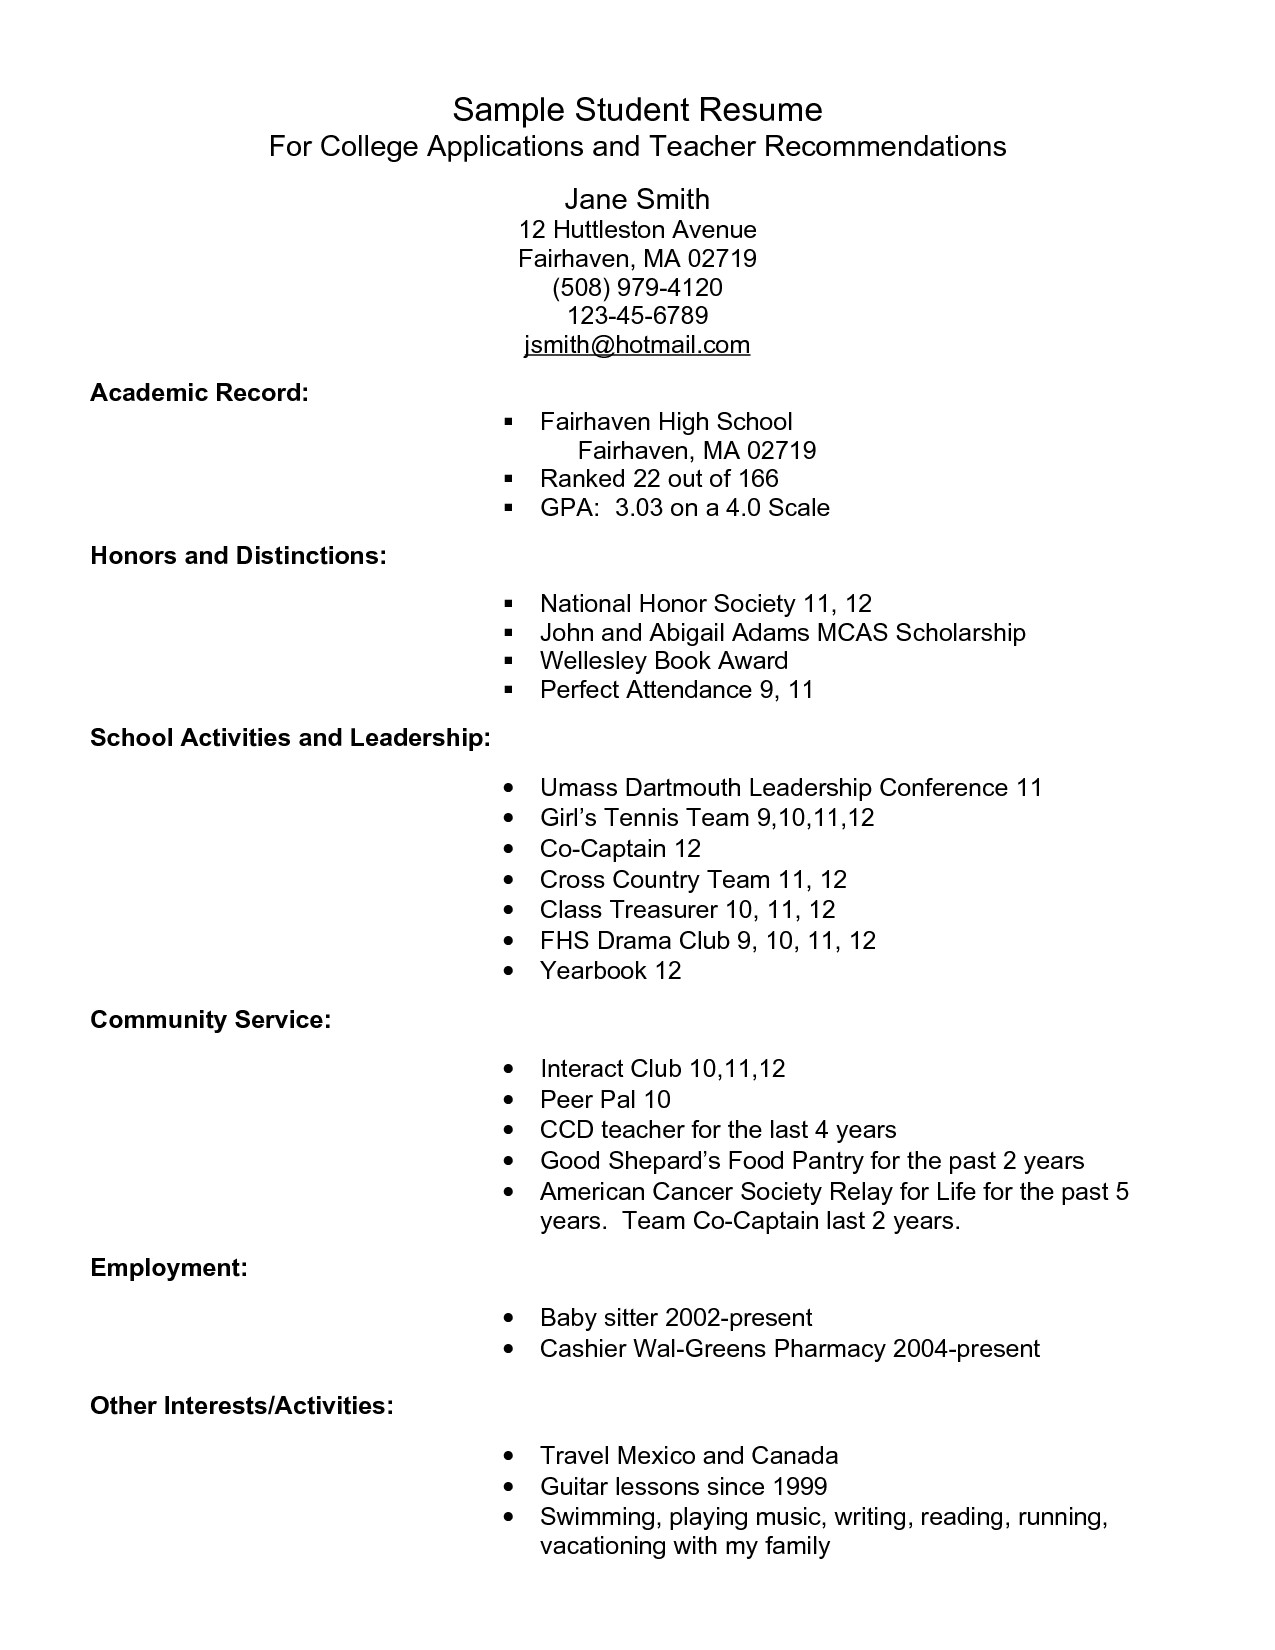 College Admissions Resume Templates Example Resume for High School Students for College